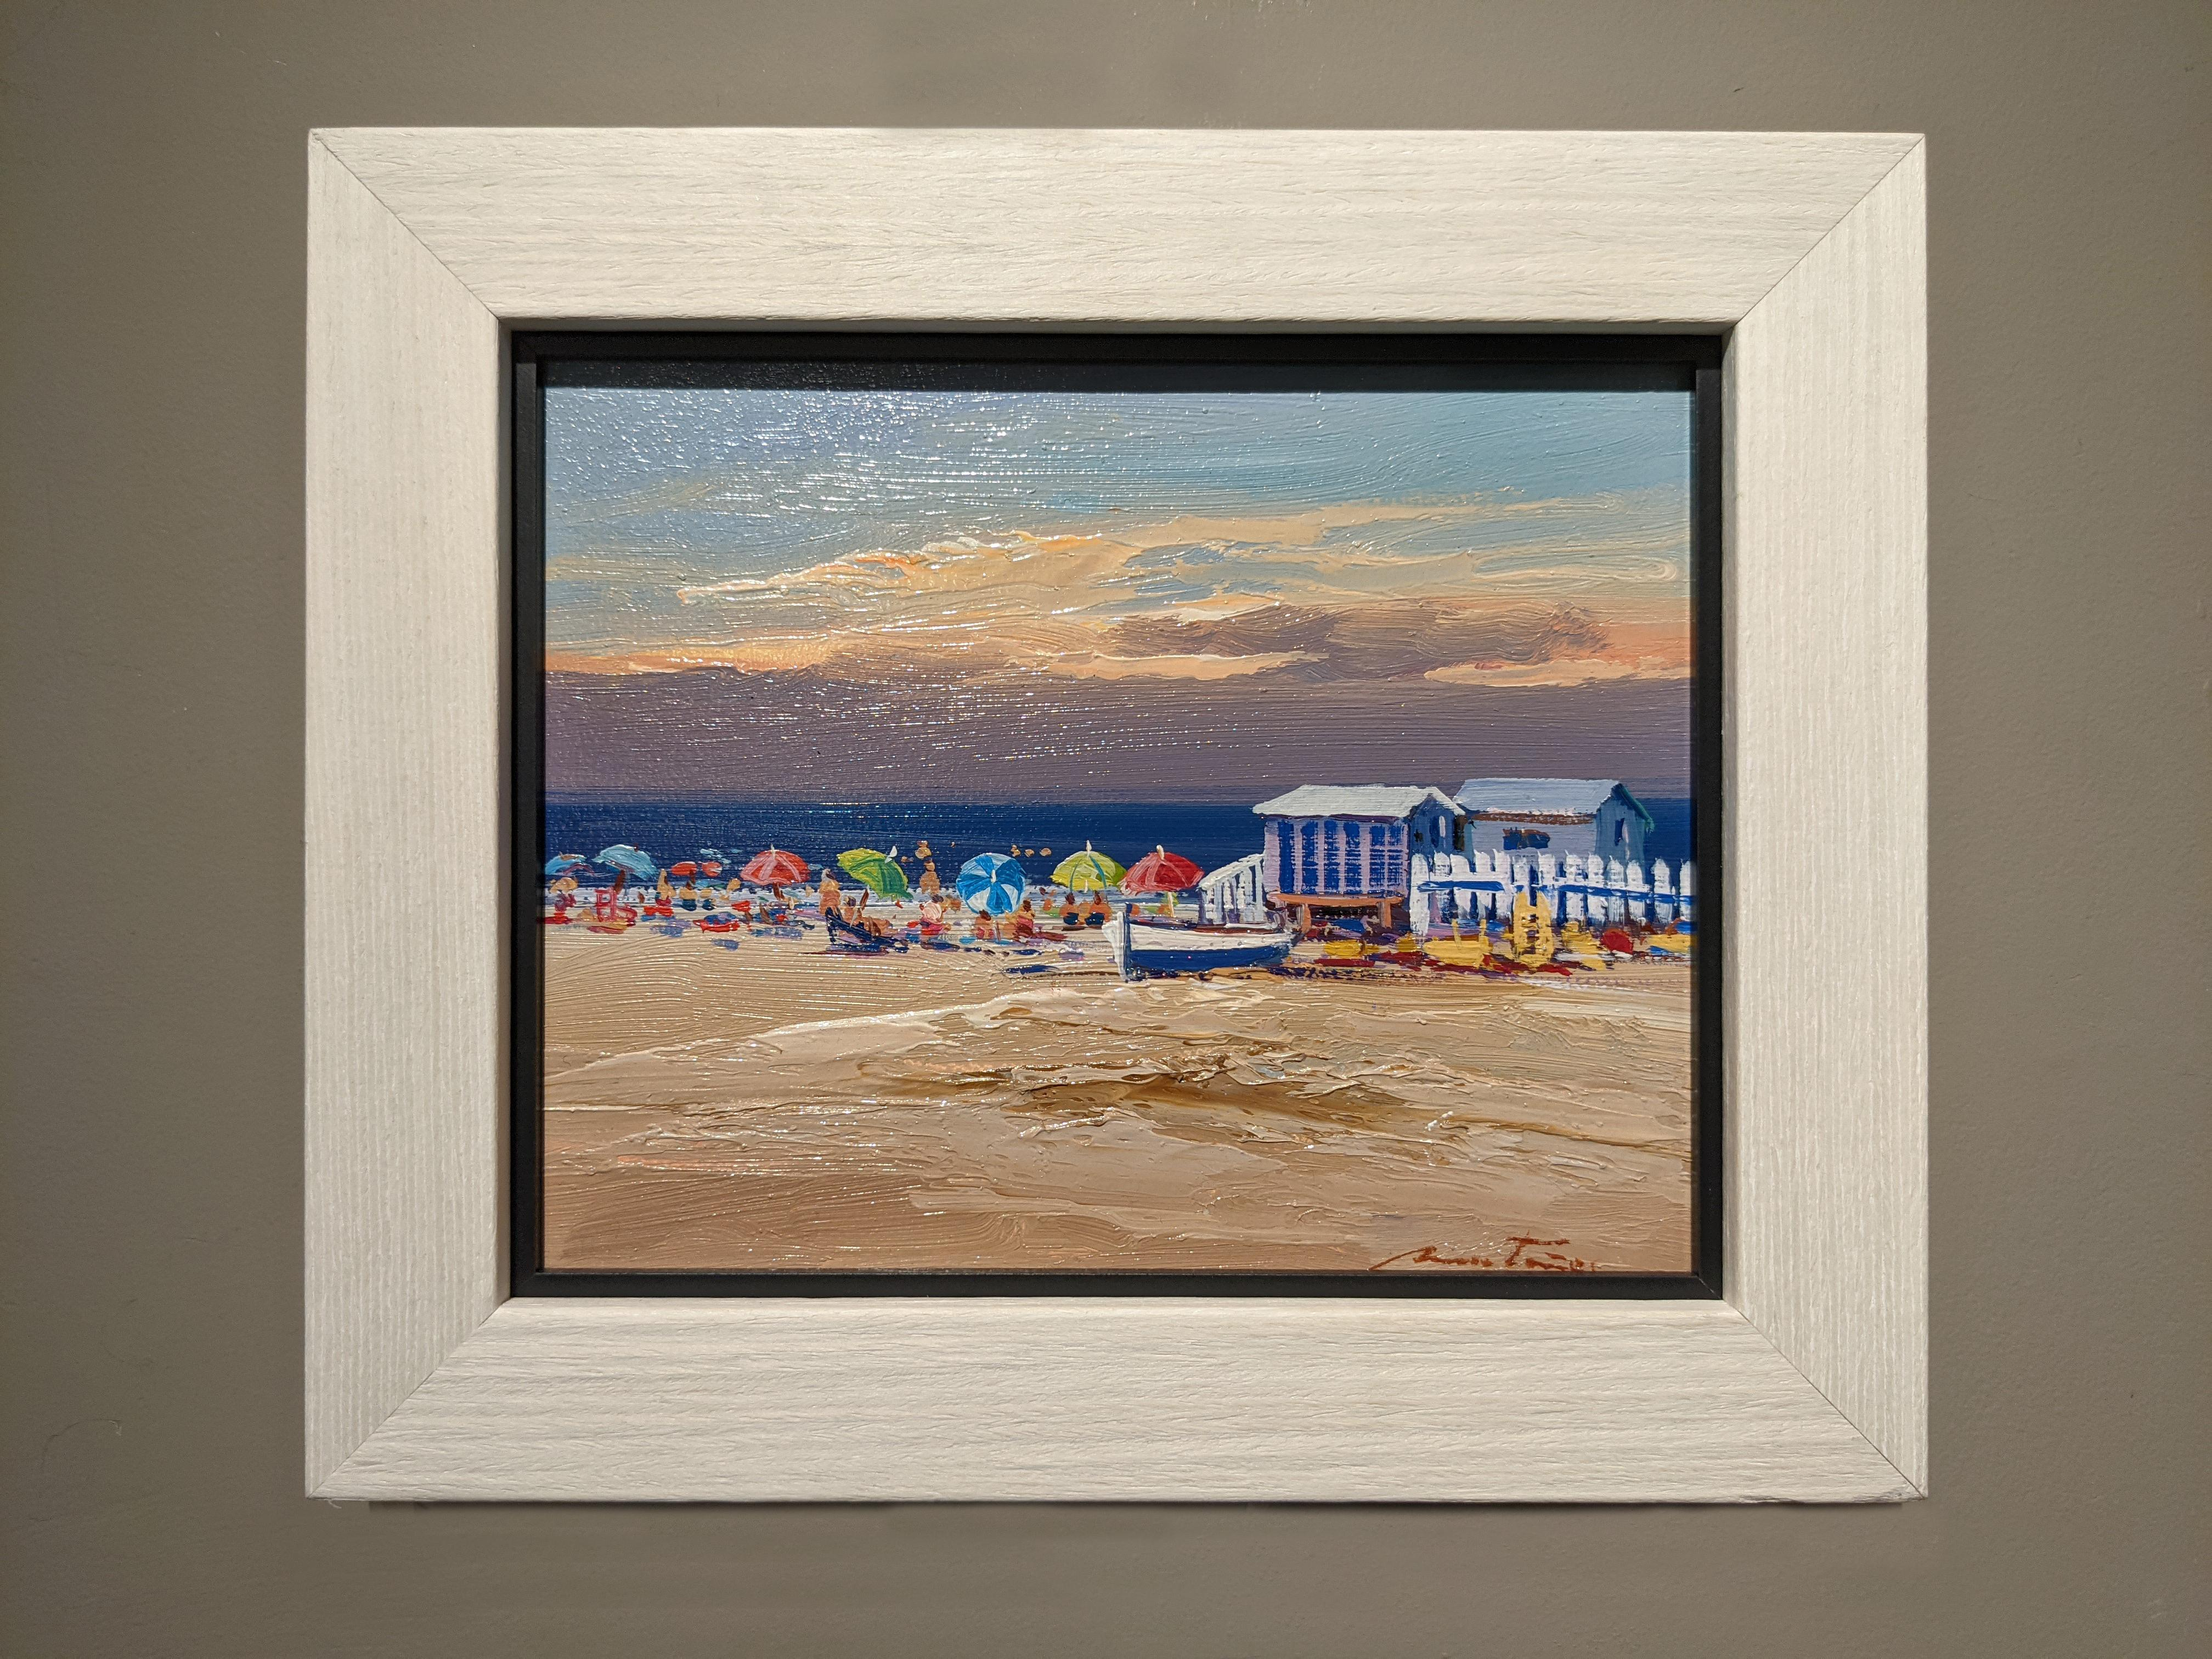 'Candy Parasols' Contemporary colourful beach landscape of parasols, sky & water